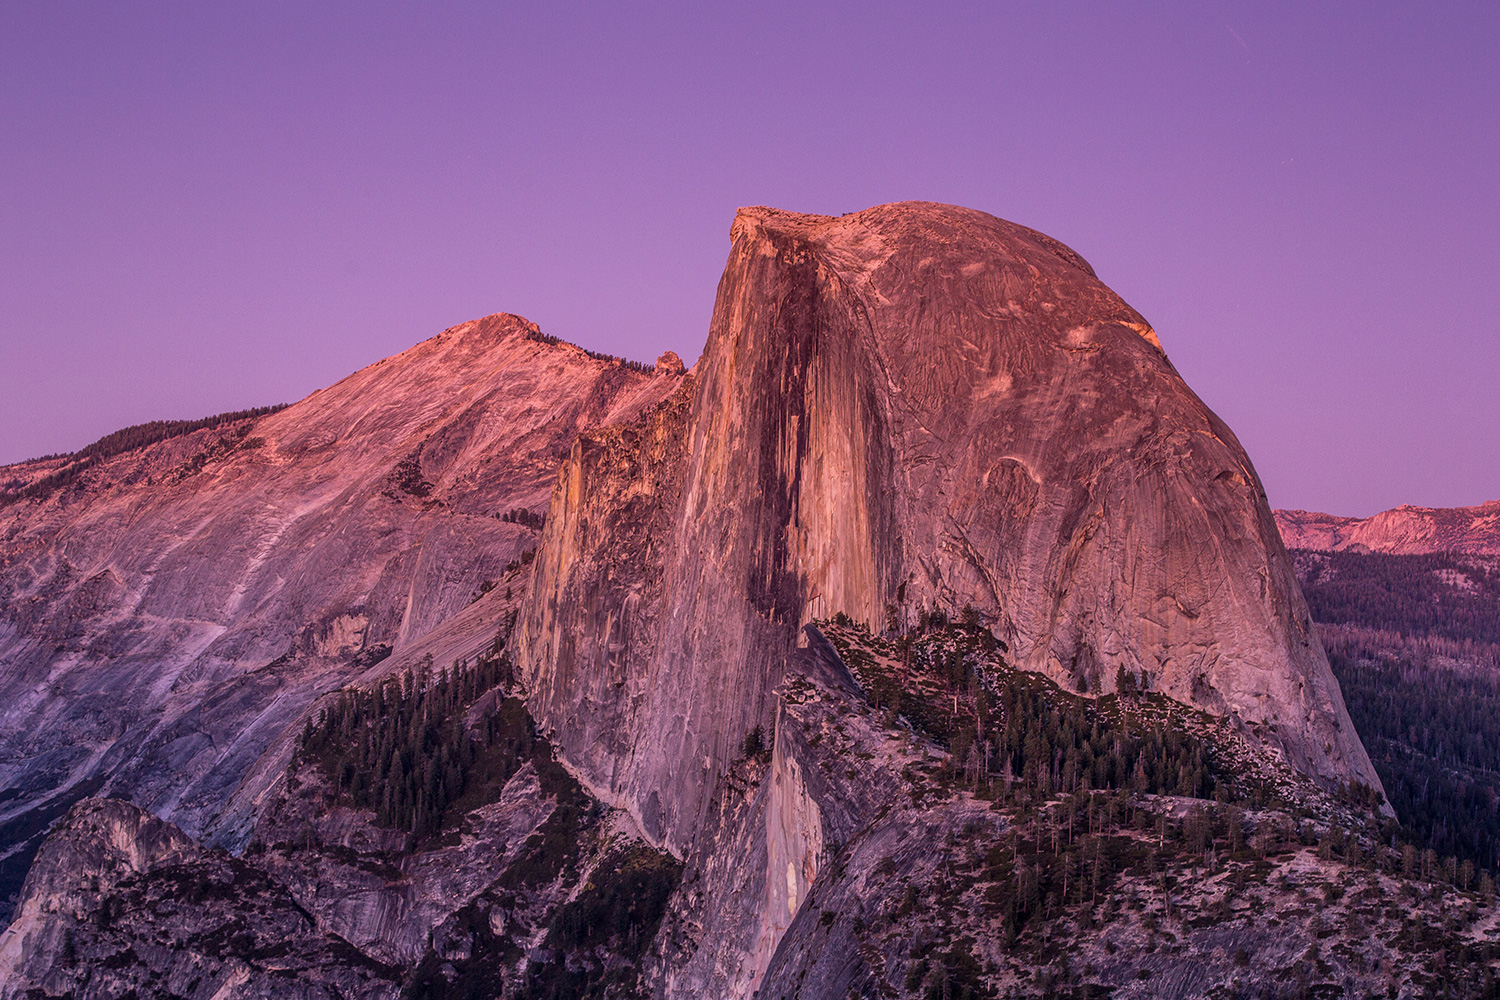 Half Dome is viewed from Glacier Point at sunset on October 5, 2019, in Yosemite National Park, California